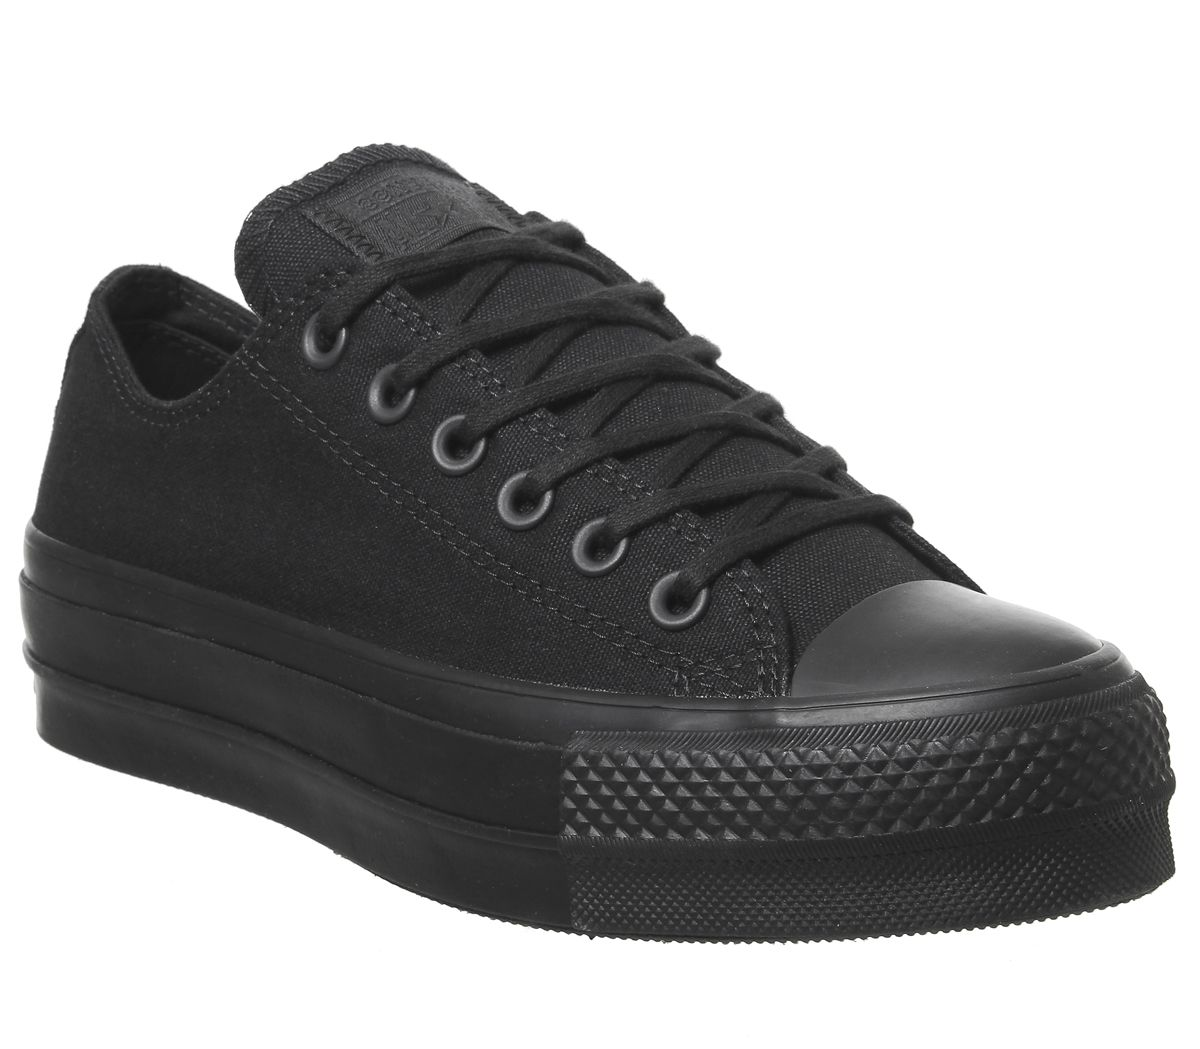 eccb09dd2220 Sentinel Womens Converse All Star Low Platform Trainers Black Mono Trainers  Shoes